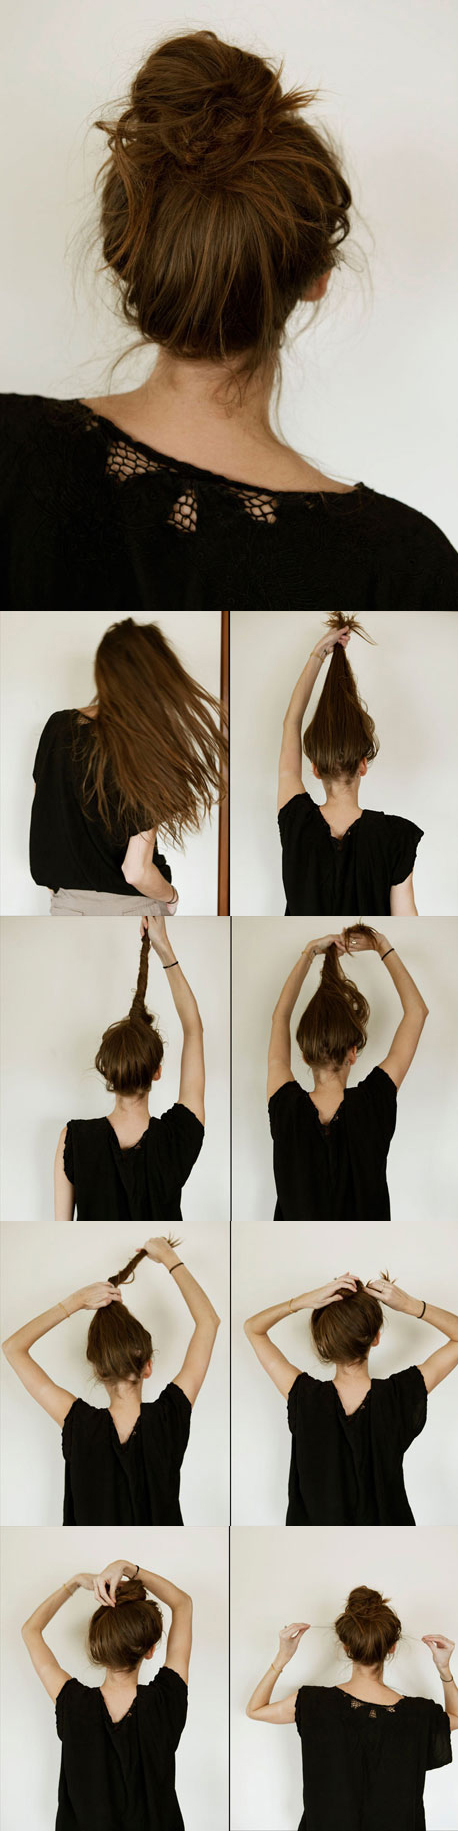 Oh-So-Simple-Bun-Hairstyles-Tutorials-Messy-Bun